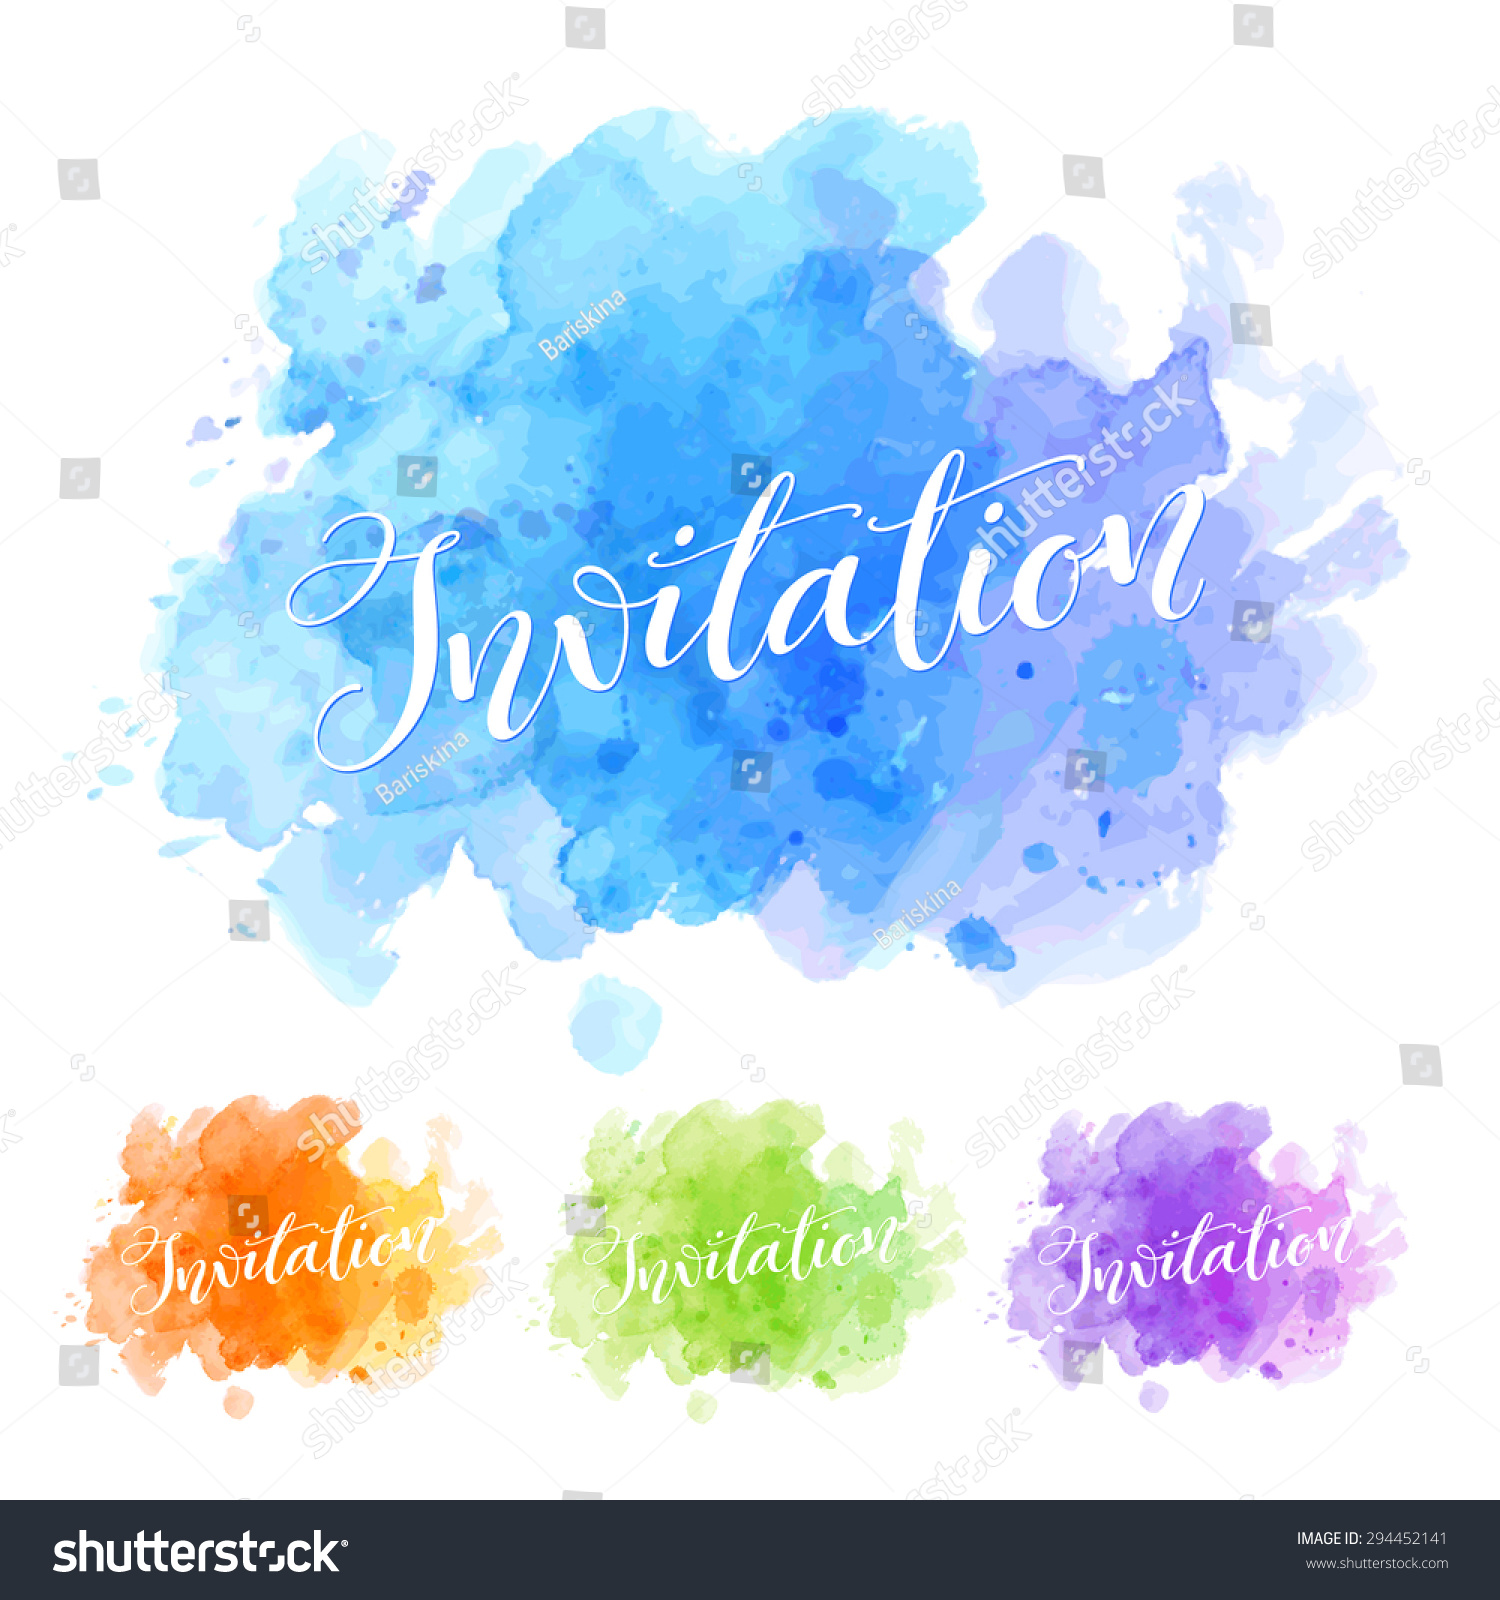 Vector calligraphy on watercolor stain background